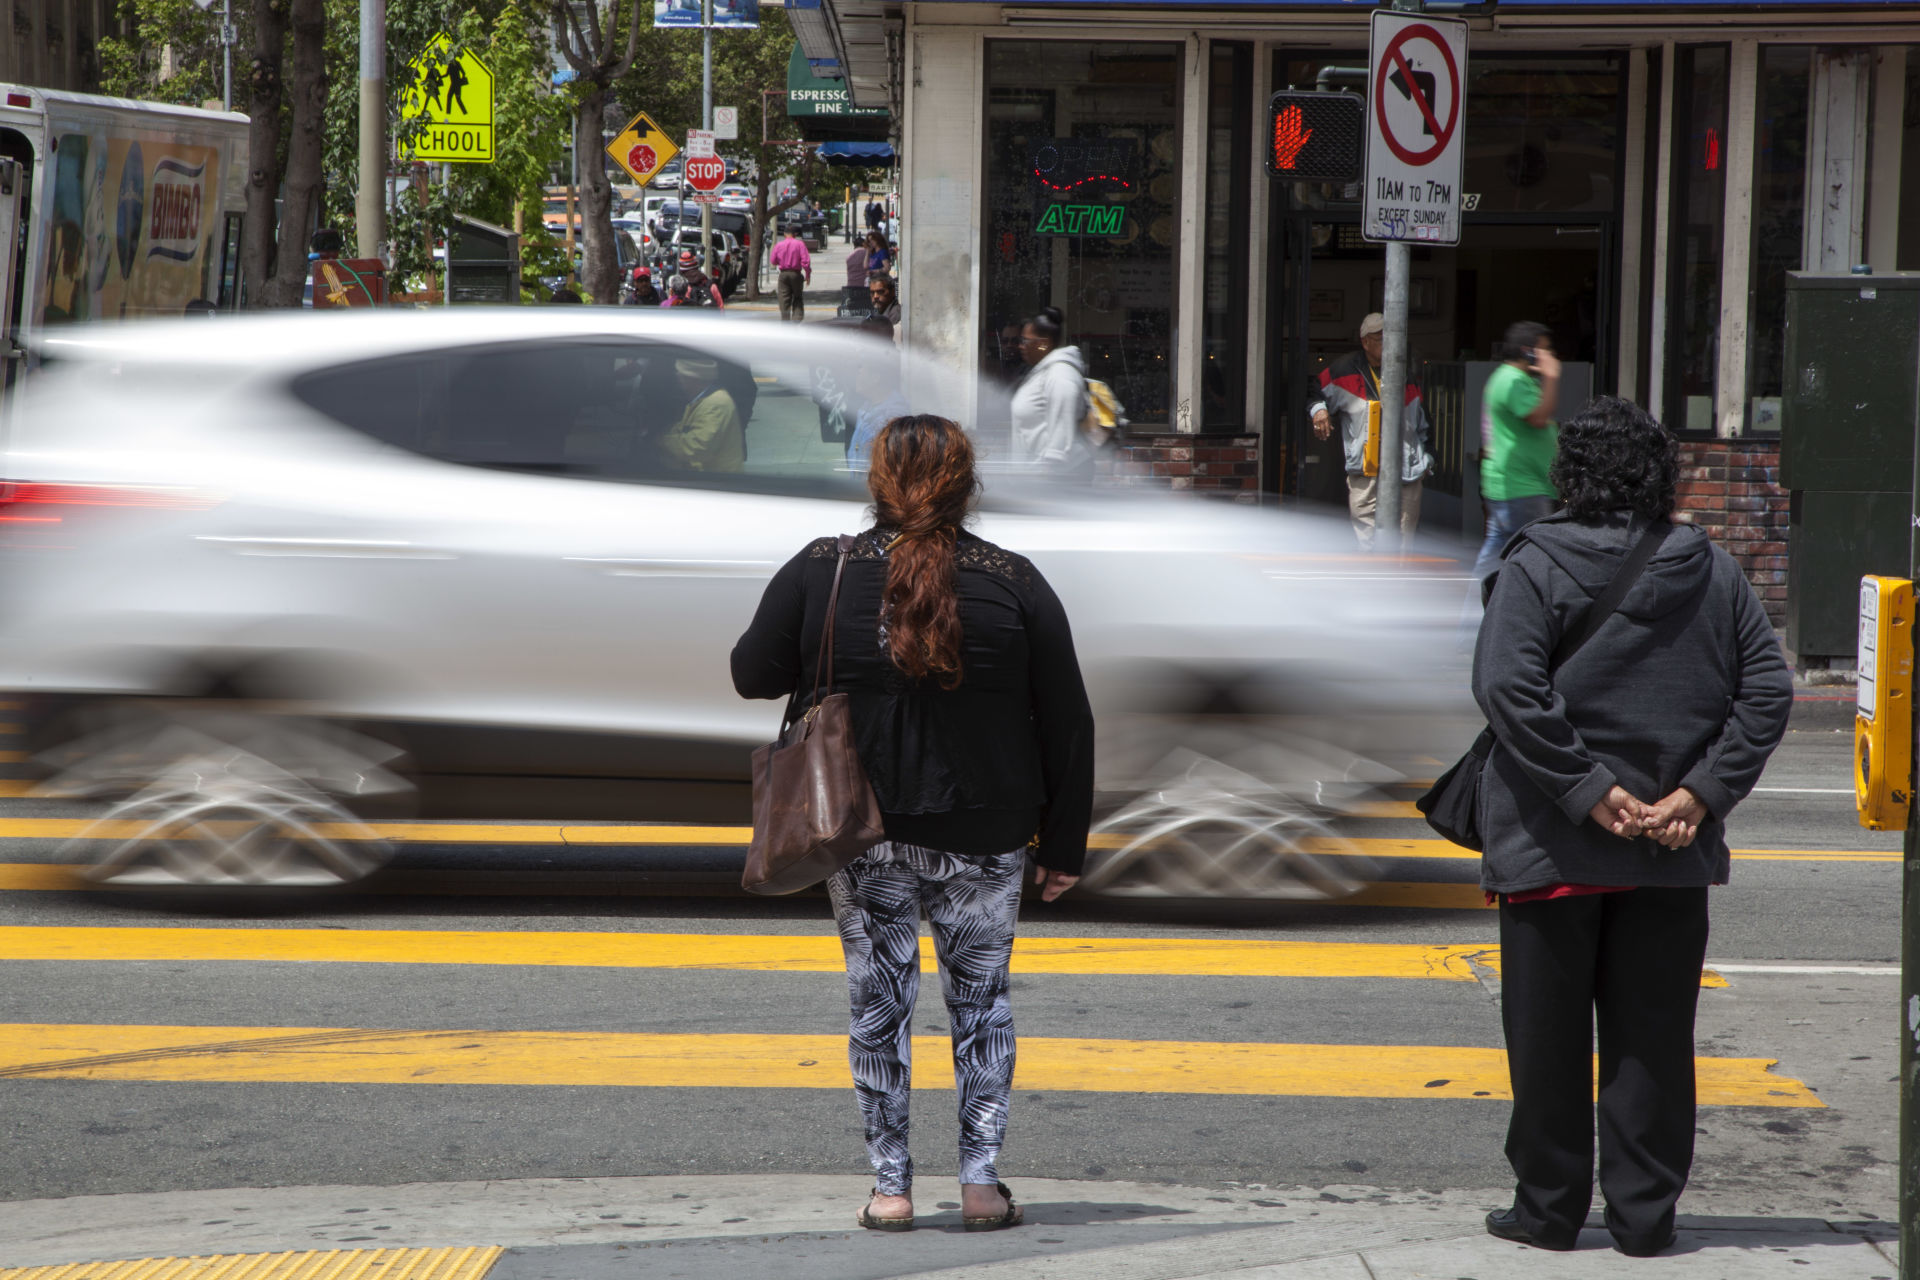 Pedestrians wait to cross 24th Street in the Mission.